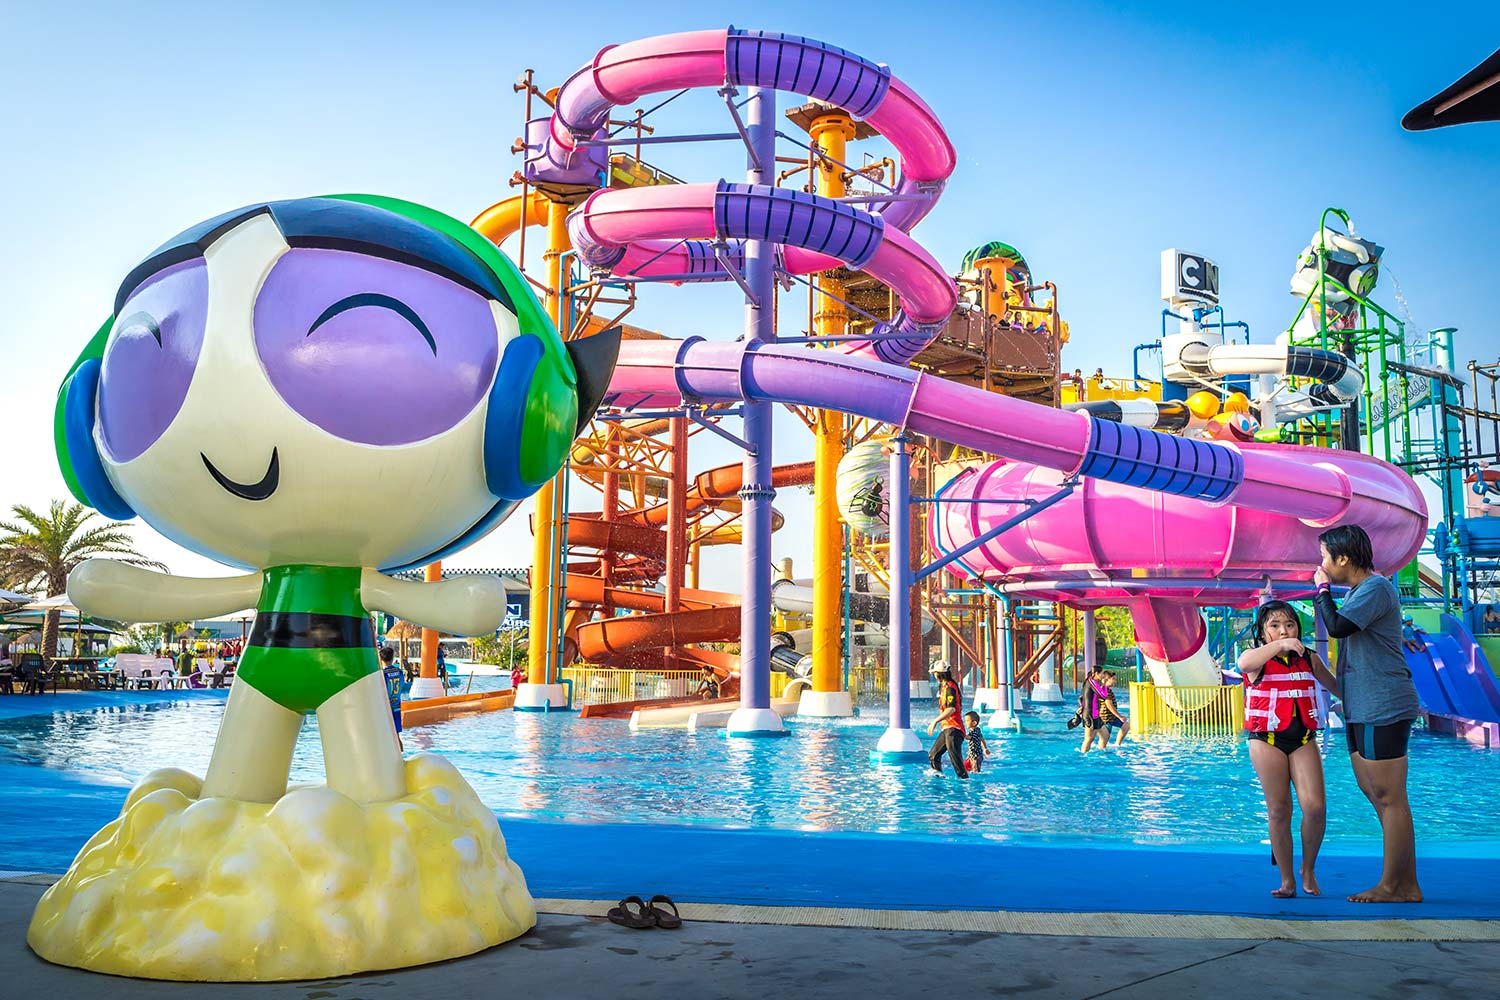 Cartoon Network Theme Park Pattaya World Travel Blog Itineraries Tips Things To Do Places To Visit